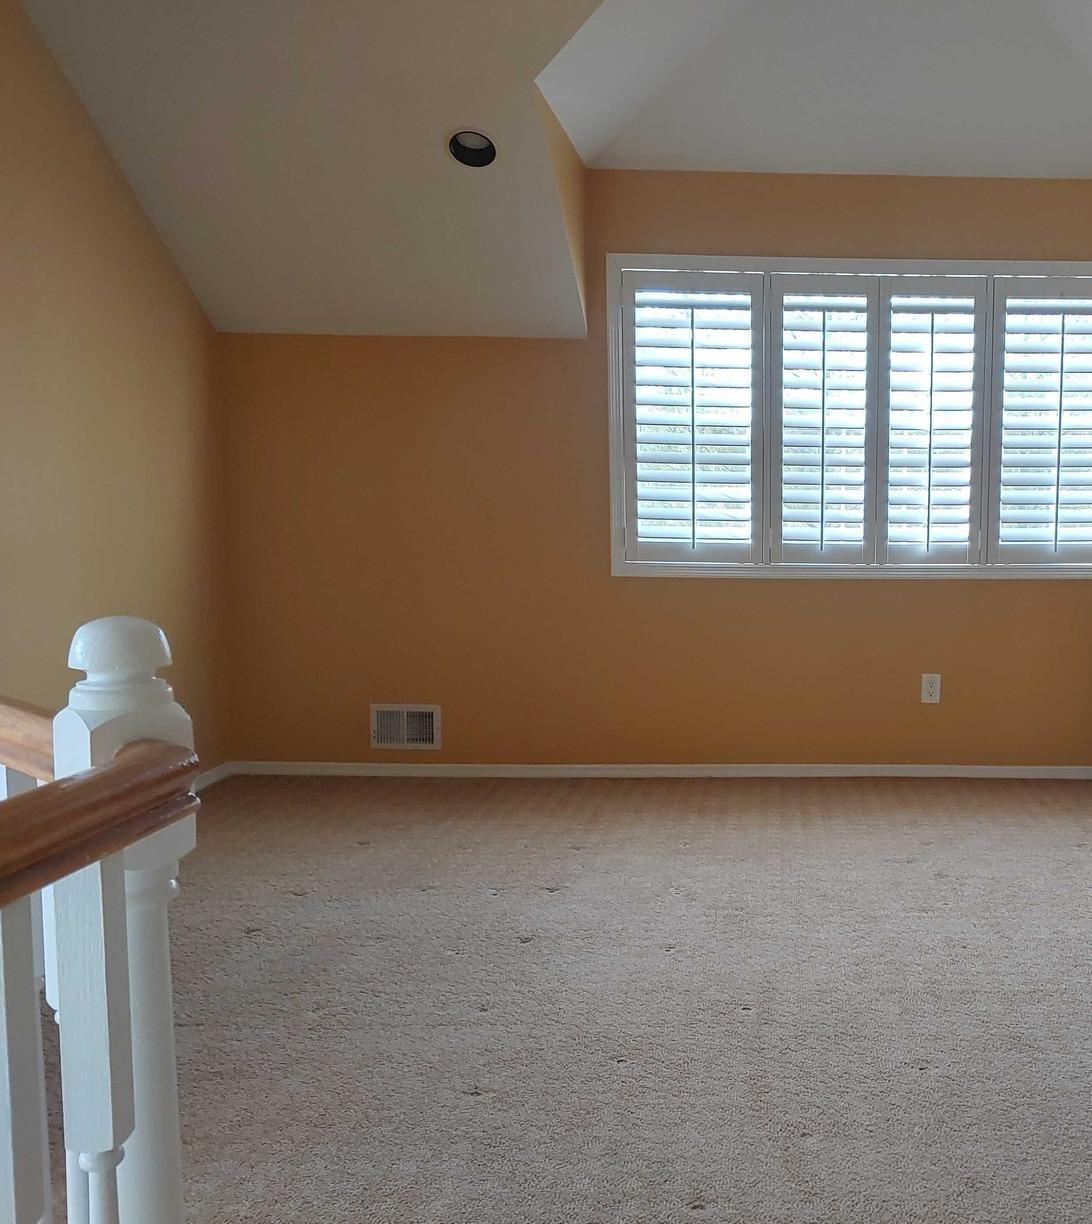 Furniture Removal in Nesconset, NY - After Photo